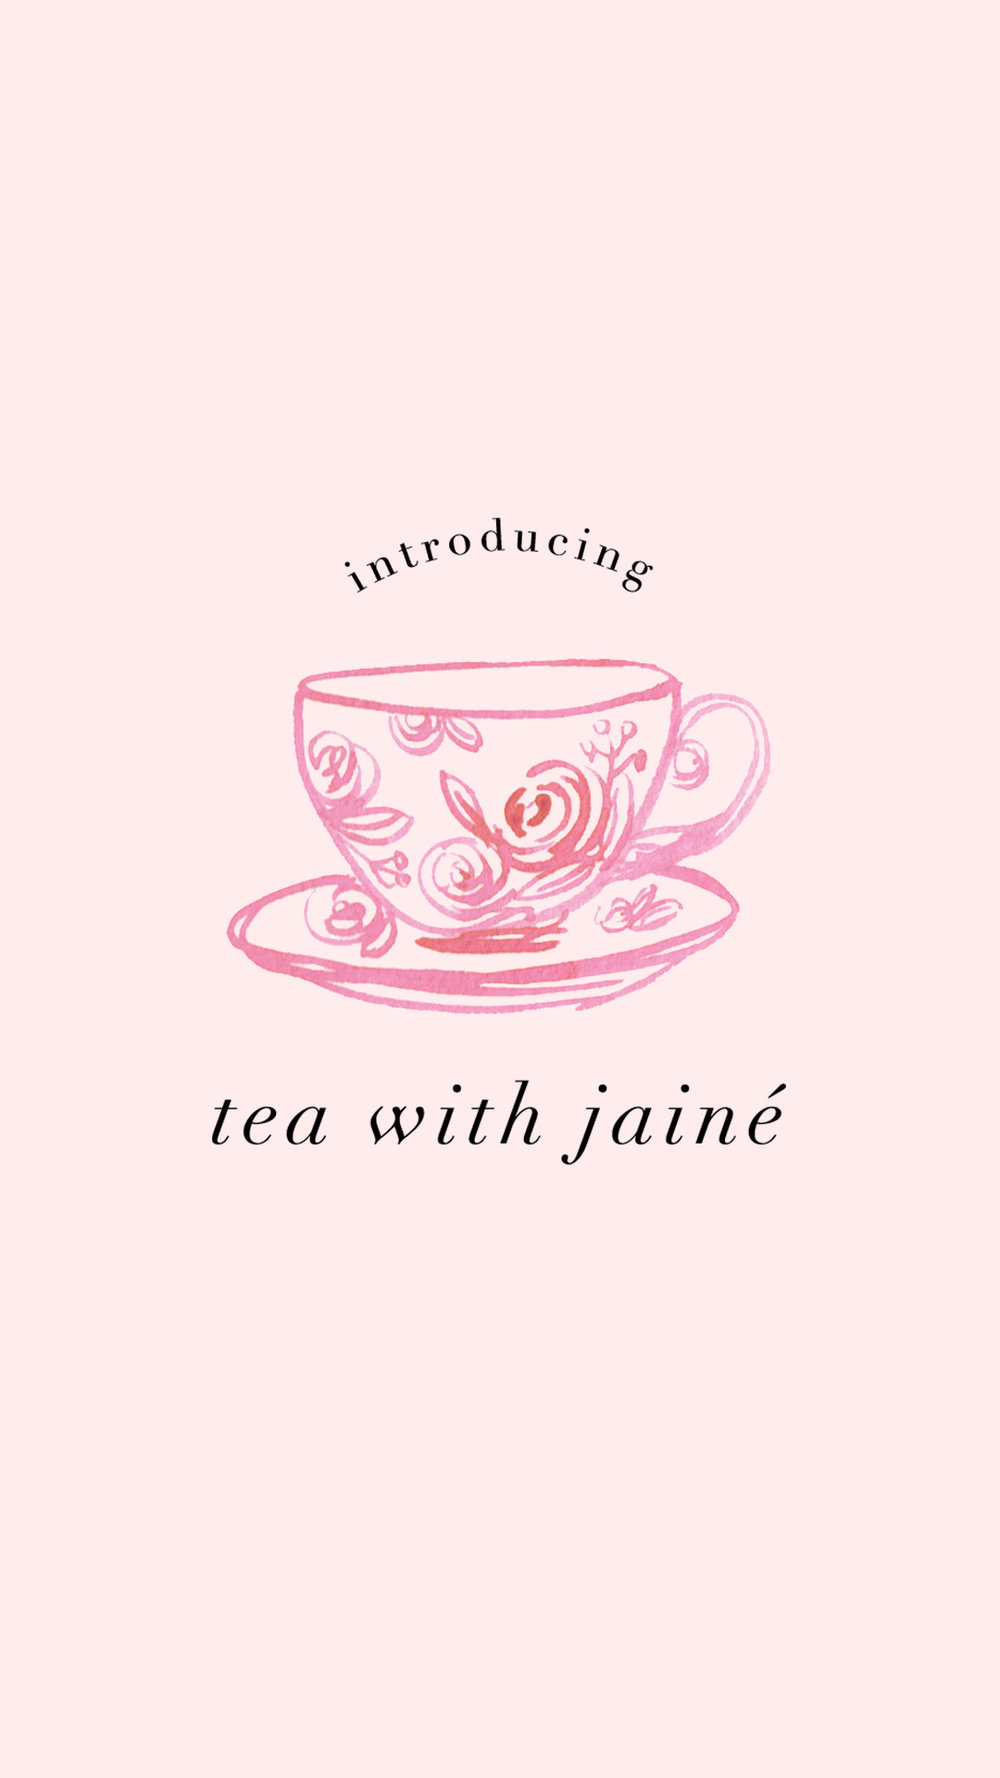 Introducing Tea with Jainé